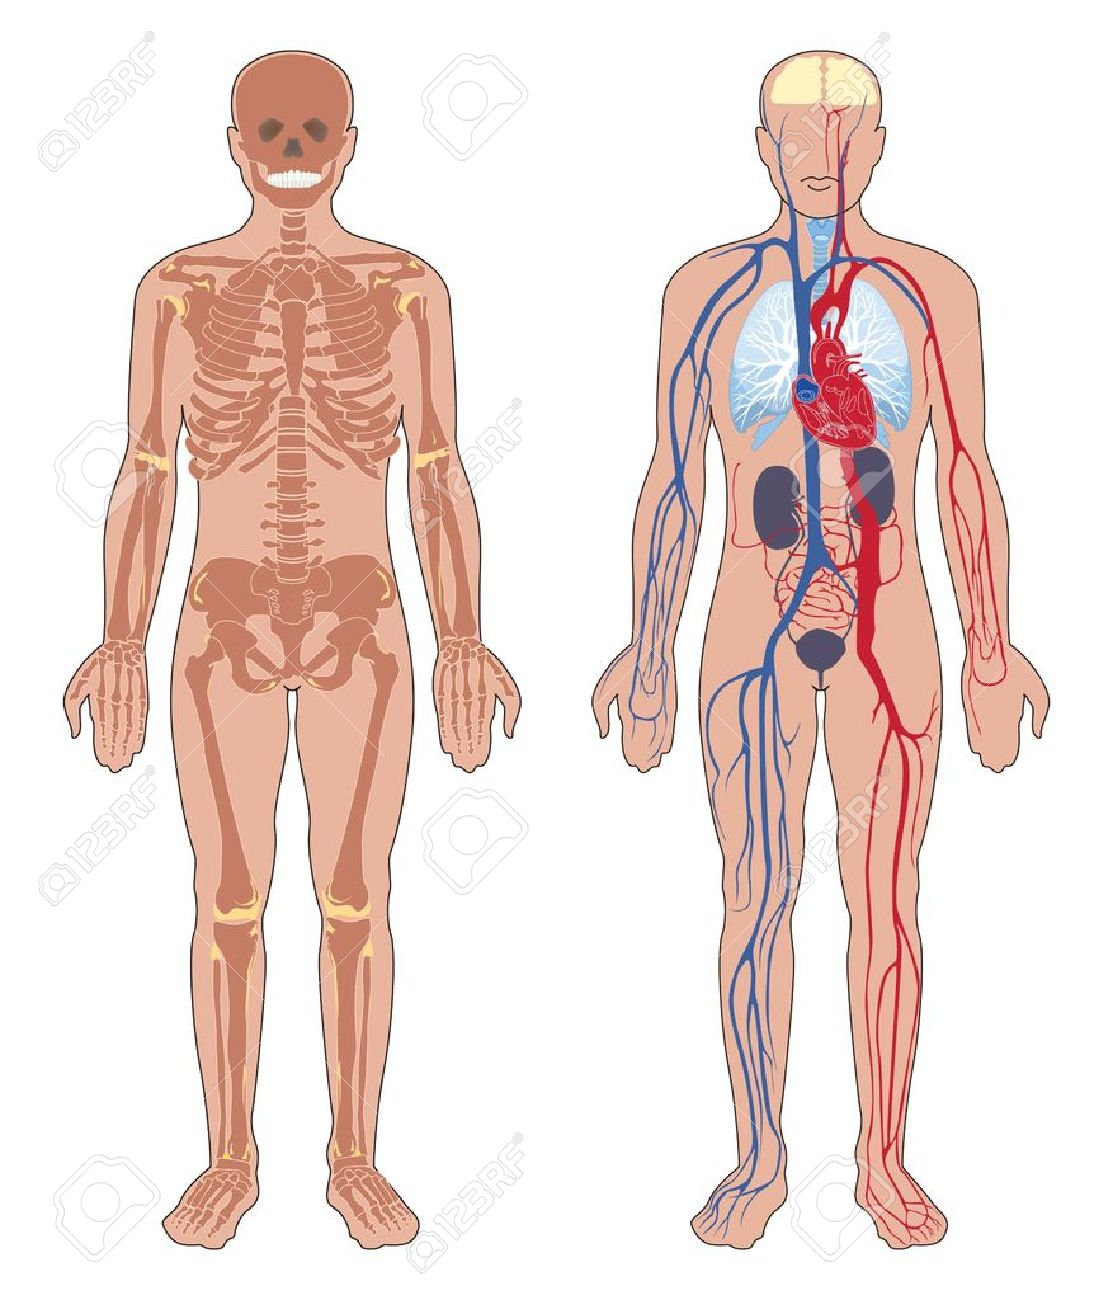 Anatomy and Anatomical disorders Photo